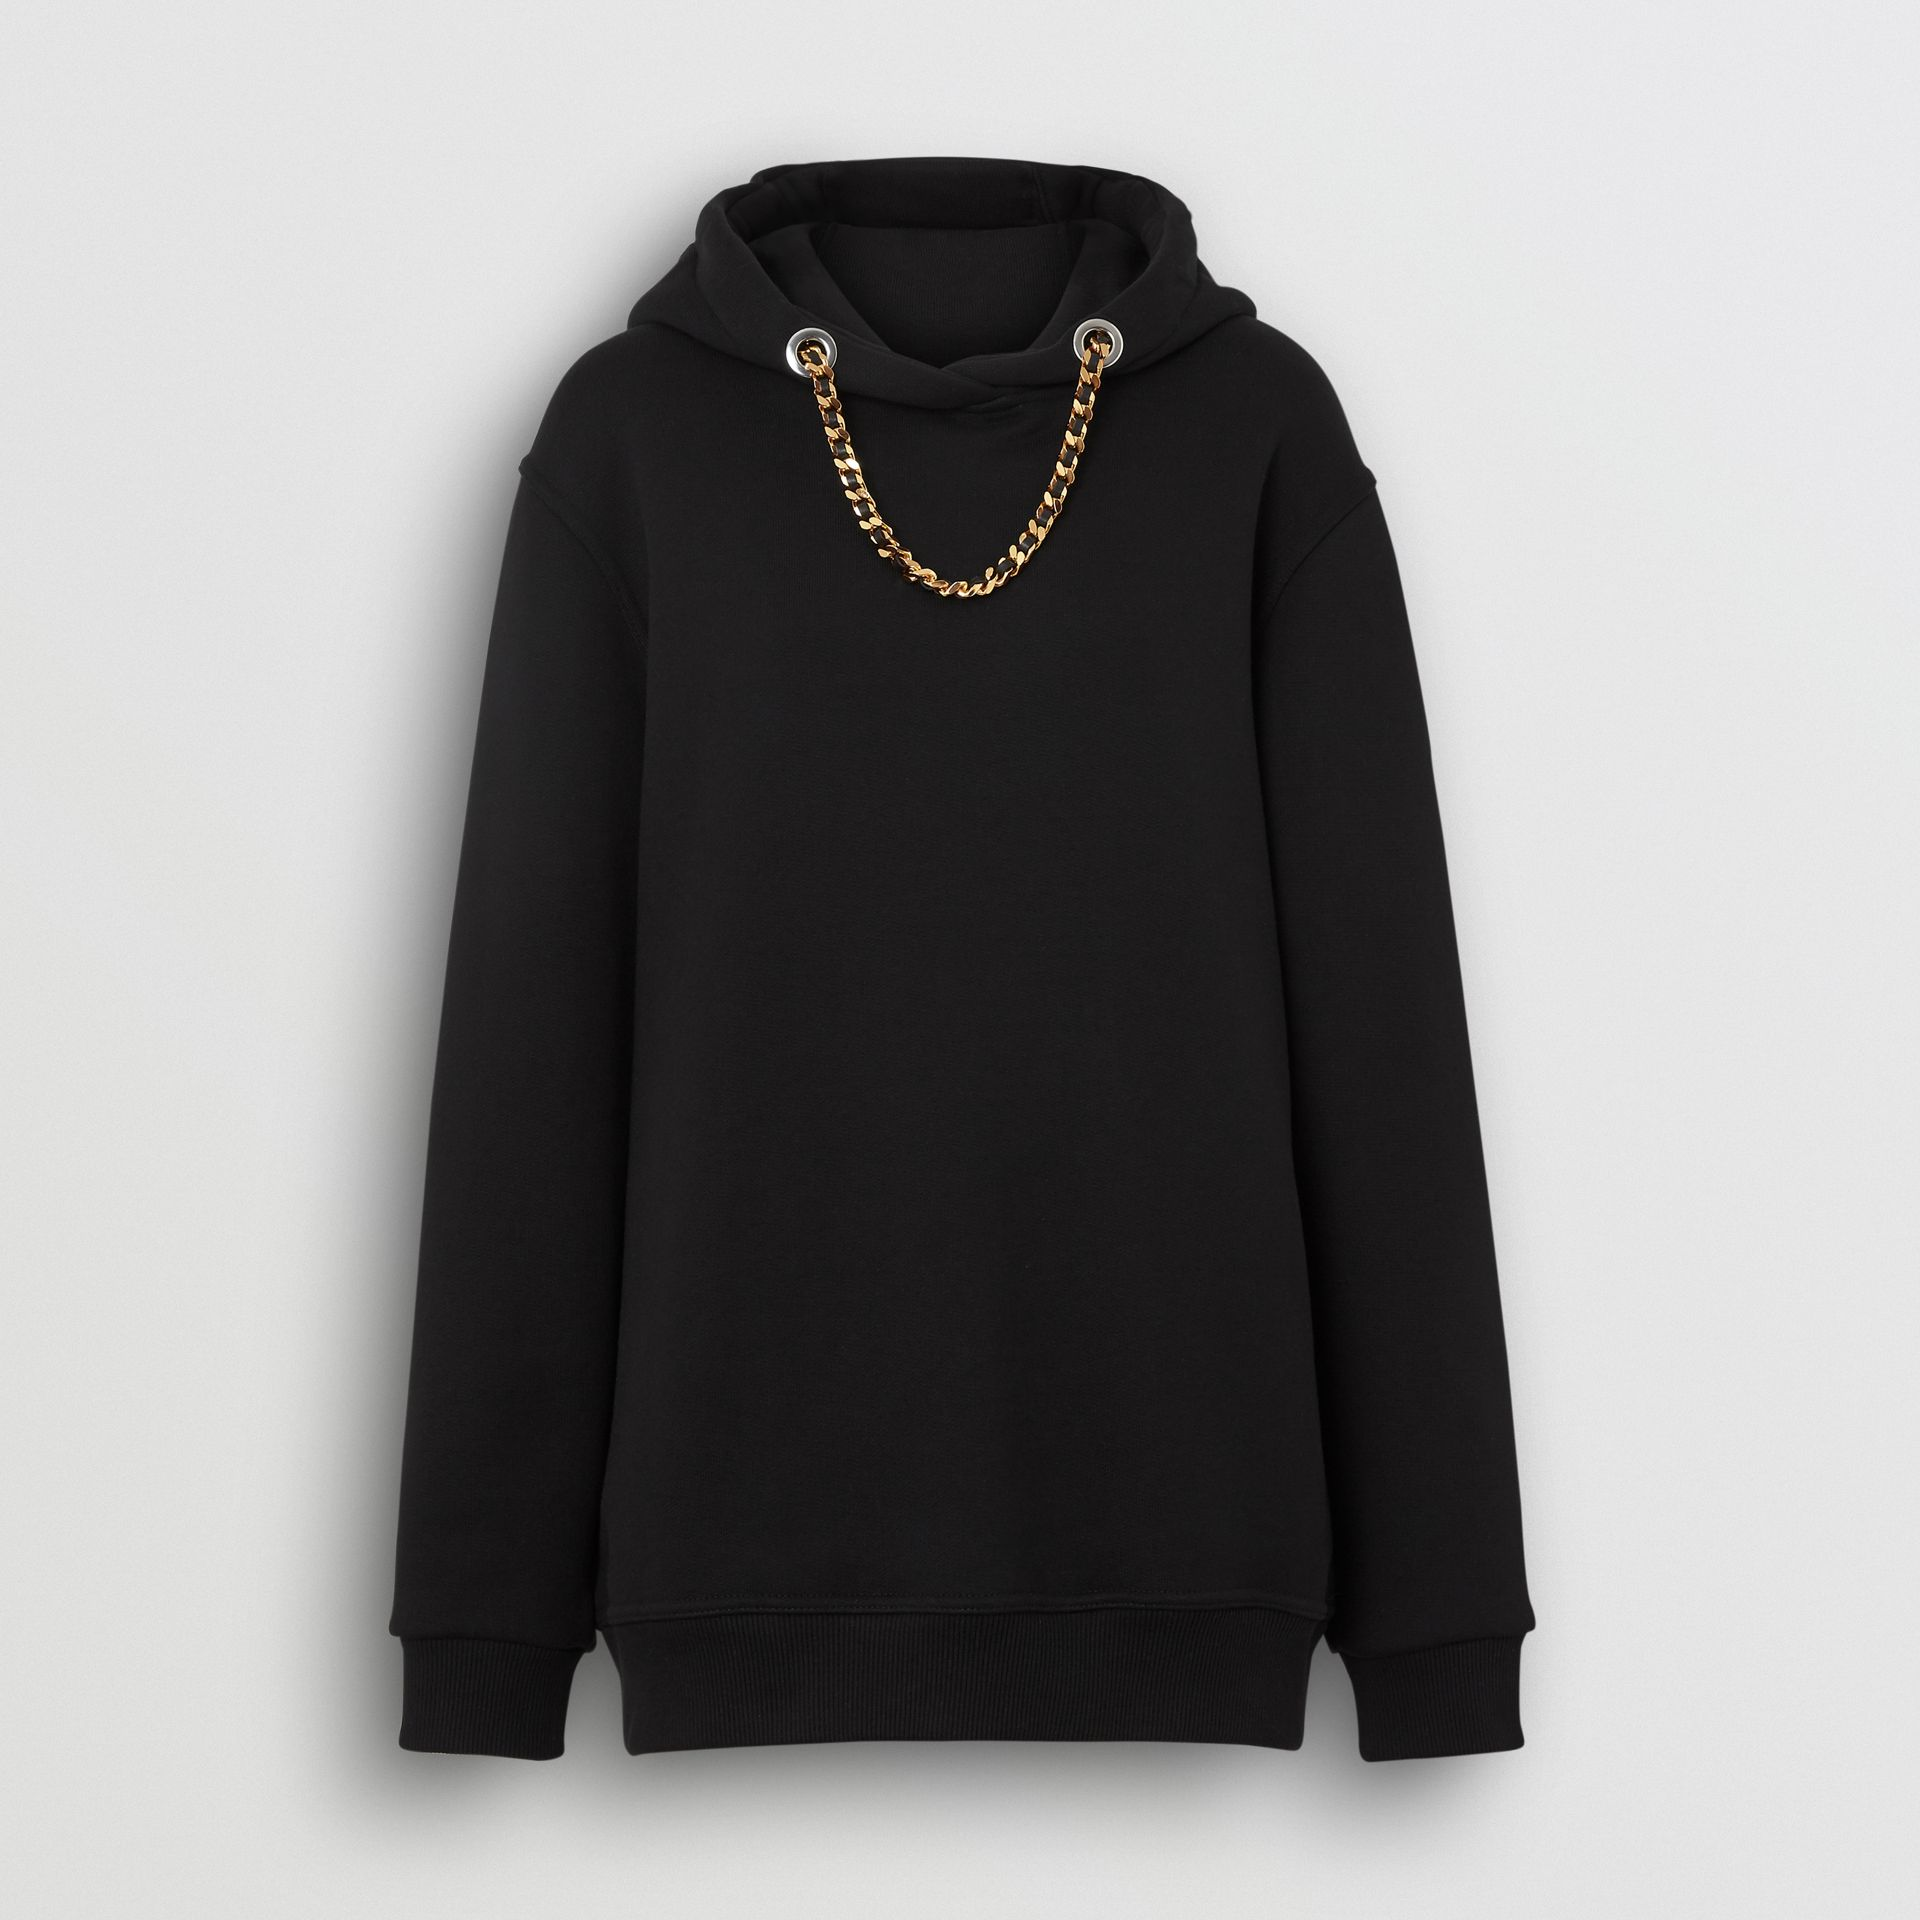 Chain Detail Hoodie in Black - Women | Burberry - gallery image 3